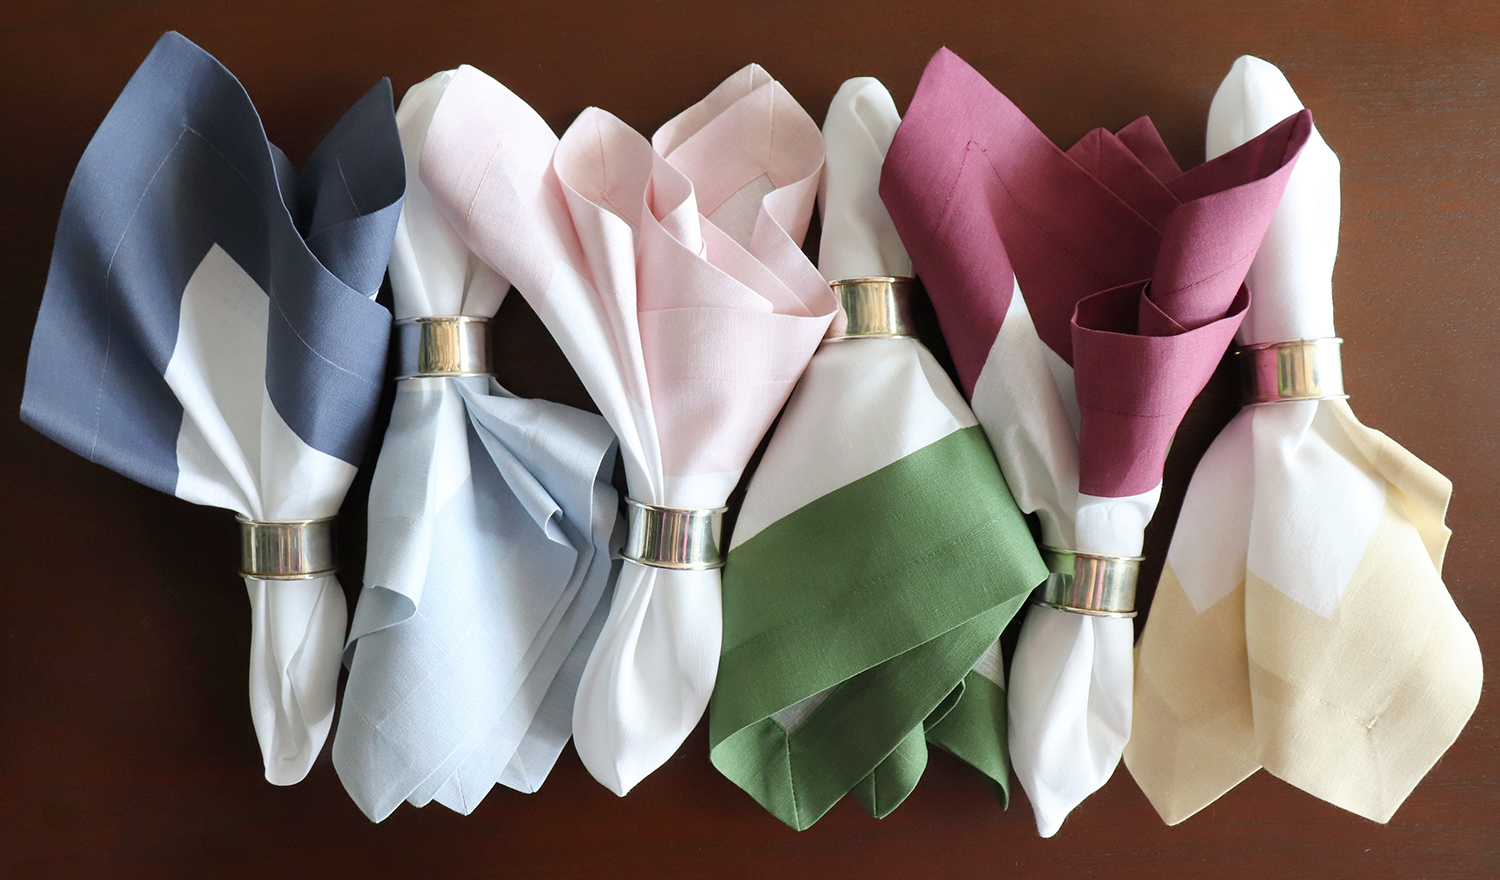 20 Napkins A Touch of Nothing-Delicate Leaves Natural White Green Spring Summer